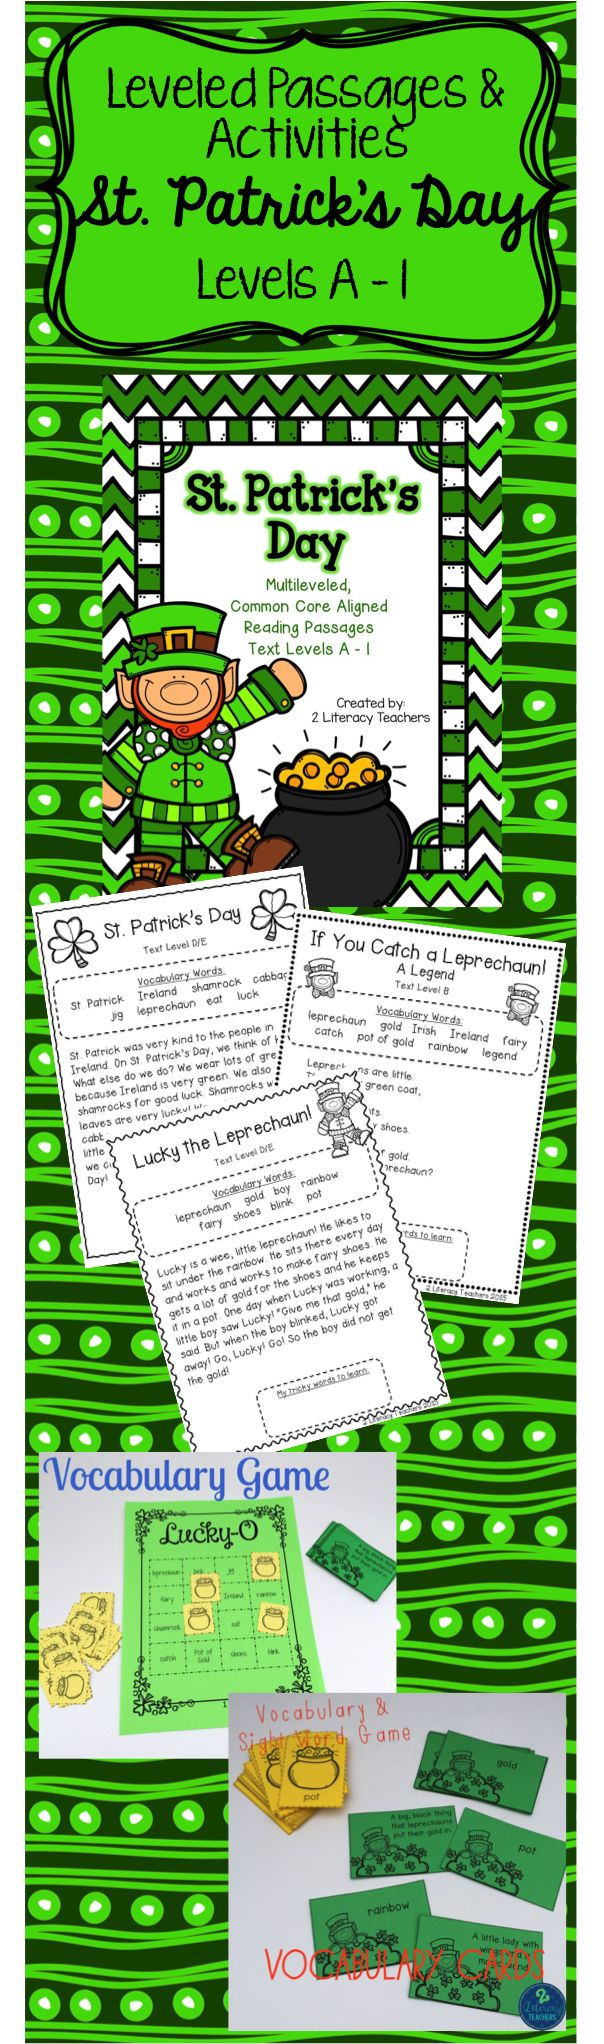 worksheet Leveled Reading Passages die besten 17 ideen zu leveled reading passages auf pinterest st patricks day and activities perfect for differentiation your whole class